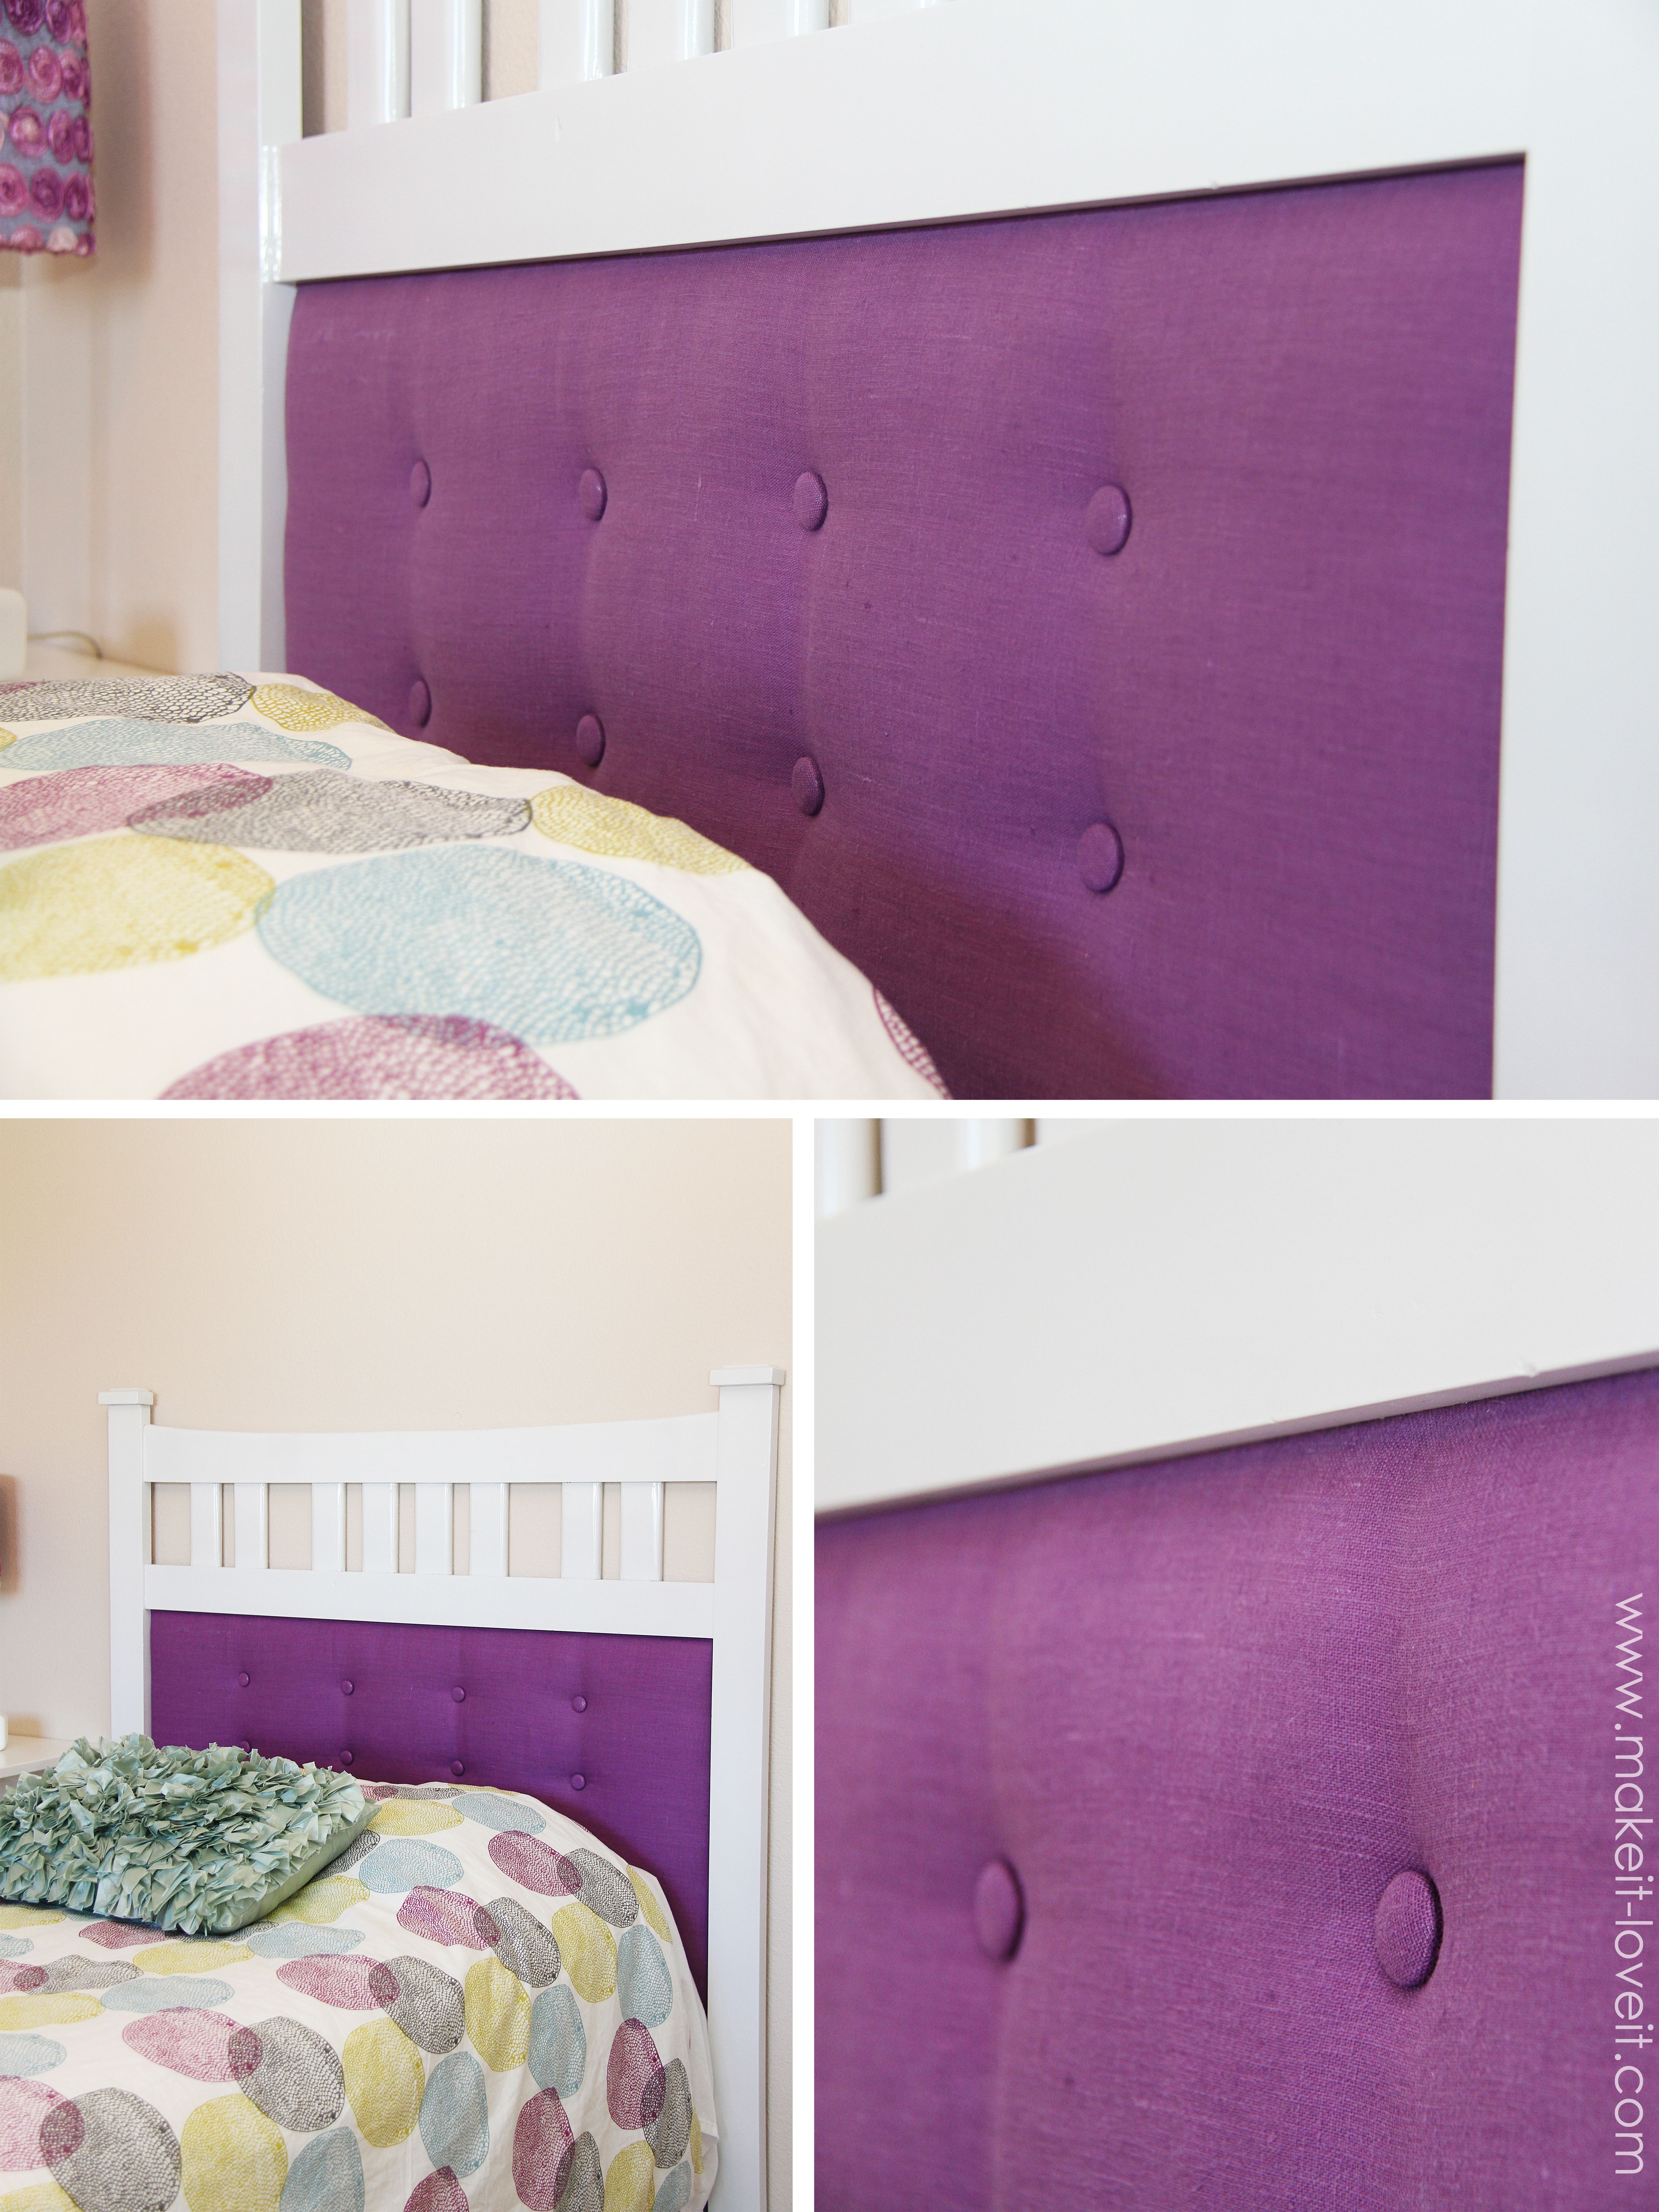 tufted headboard | Project Ideas | Pinterest | Cabecera, Jardines y ...